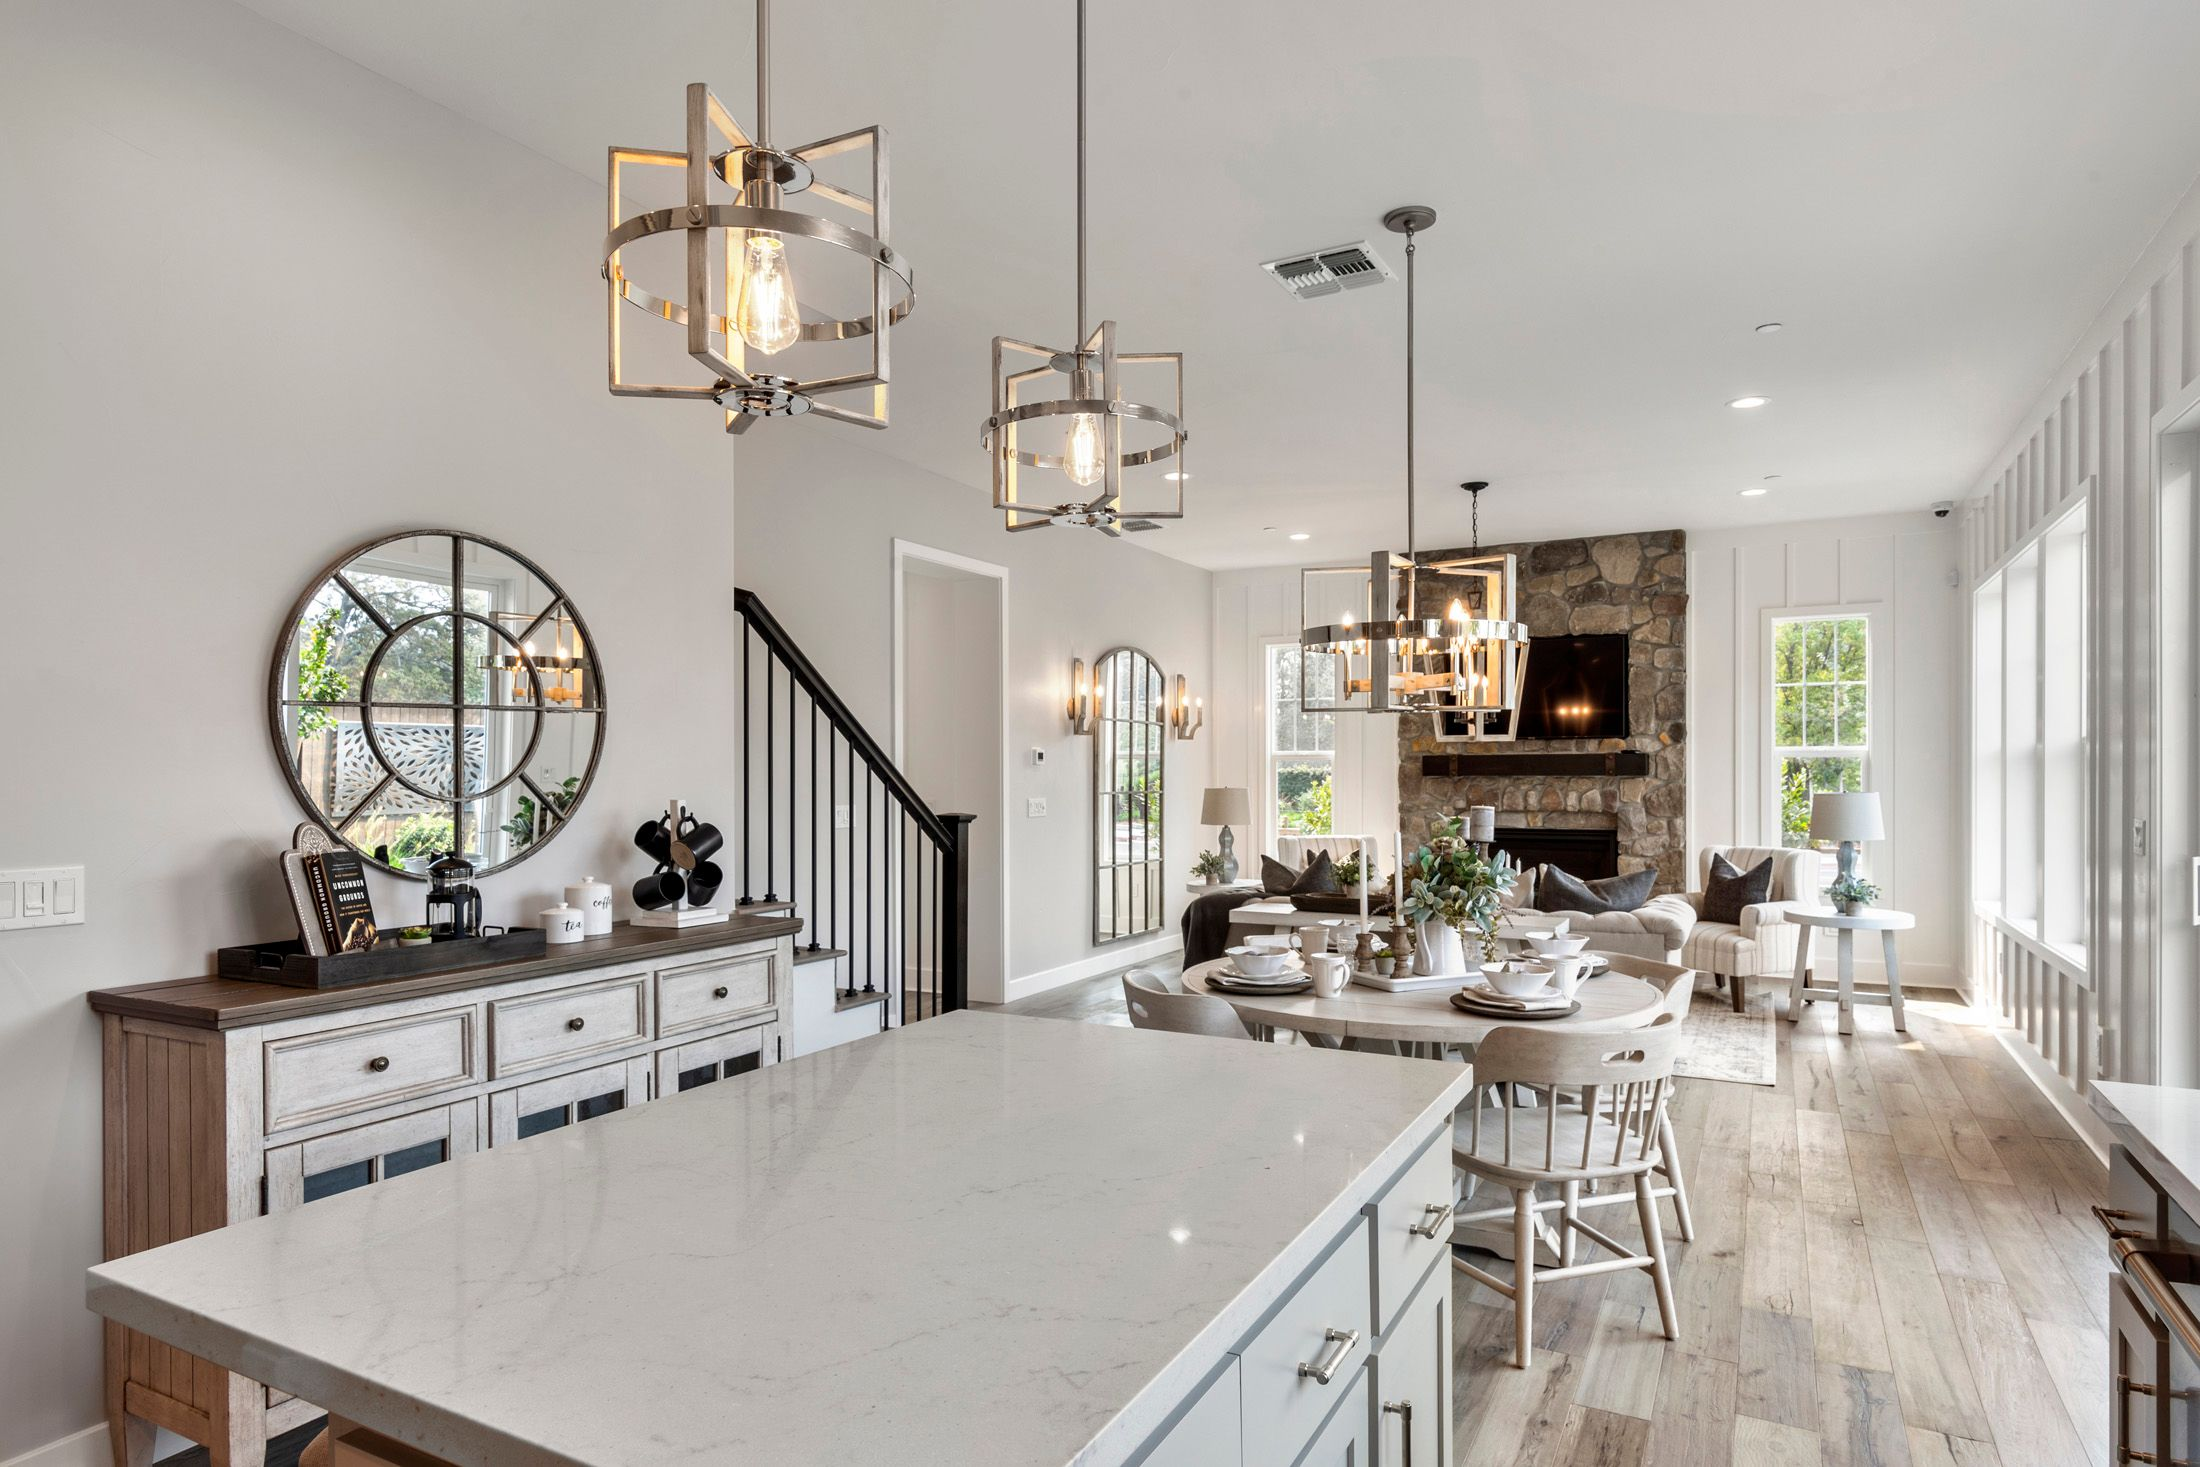 Kitchen featured in the Residence 4 By BlackPine Communites in Sacramento, CA